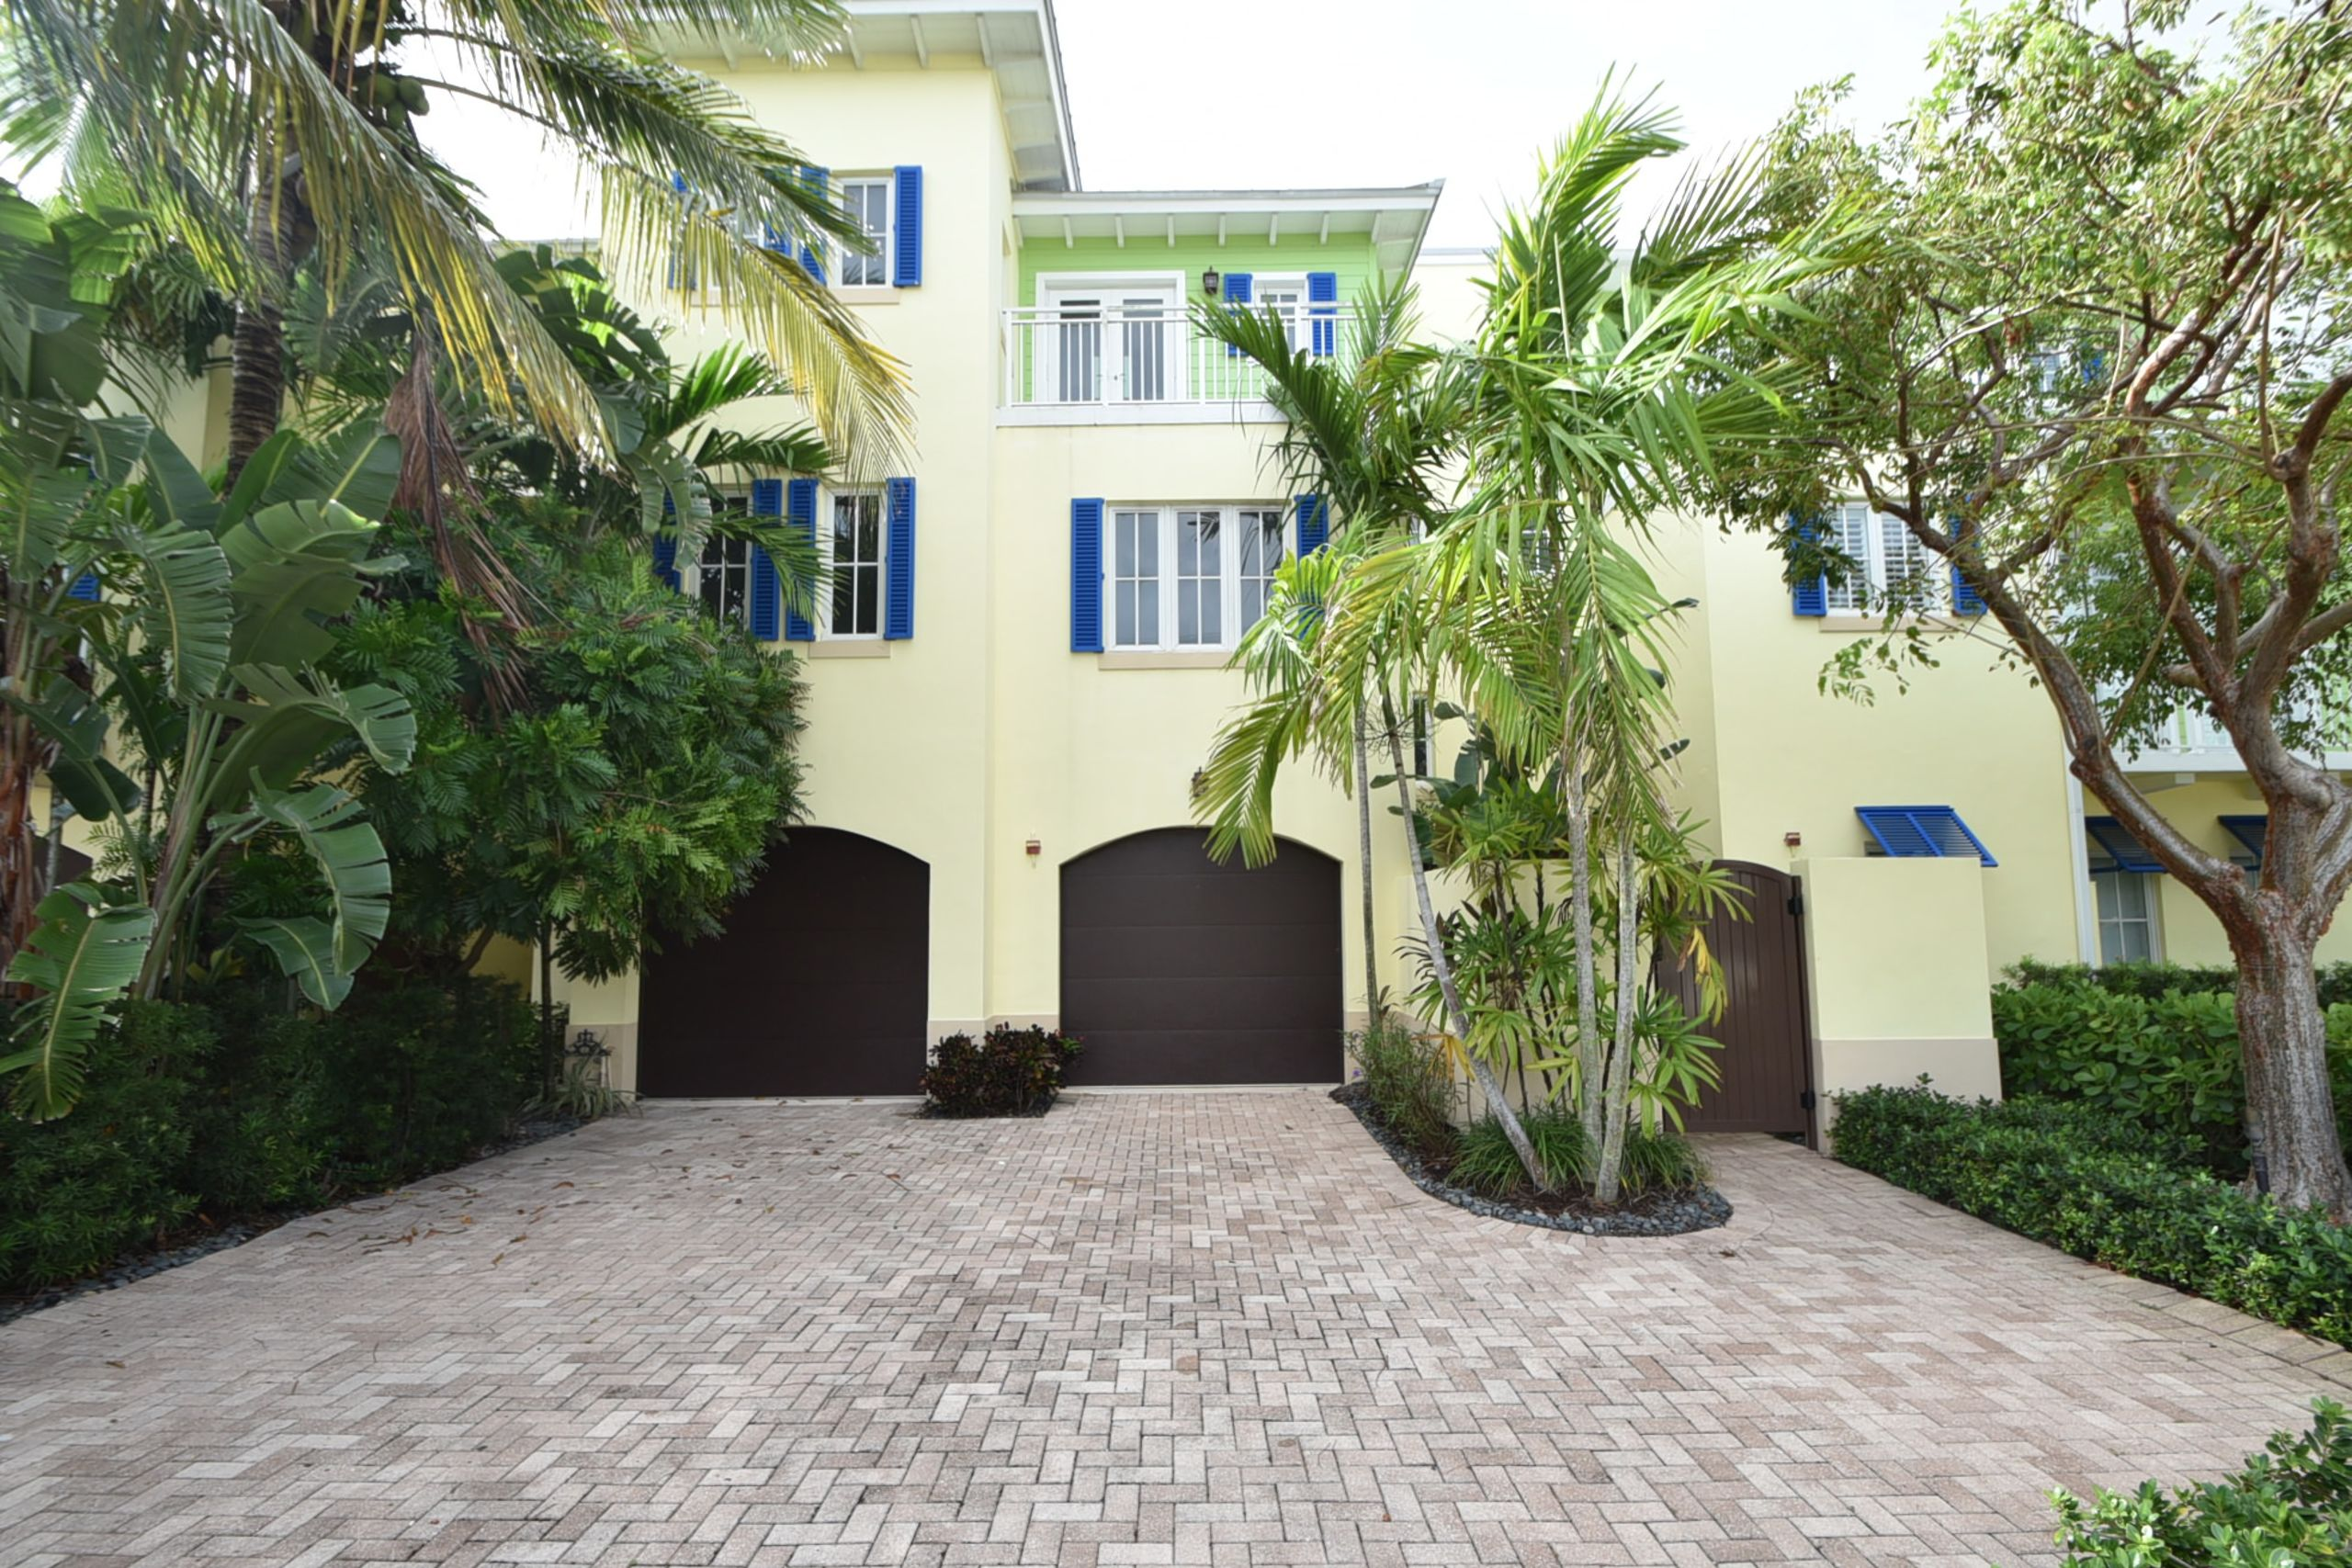 UNDER CONTRACT, East Delray 4000 Liv SF, 4BR TH w/Elevator, 1/2 Block to Beach, Offered at $1,525,000